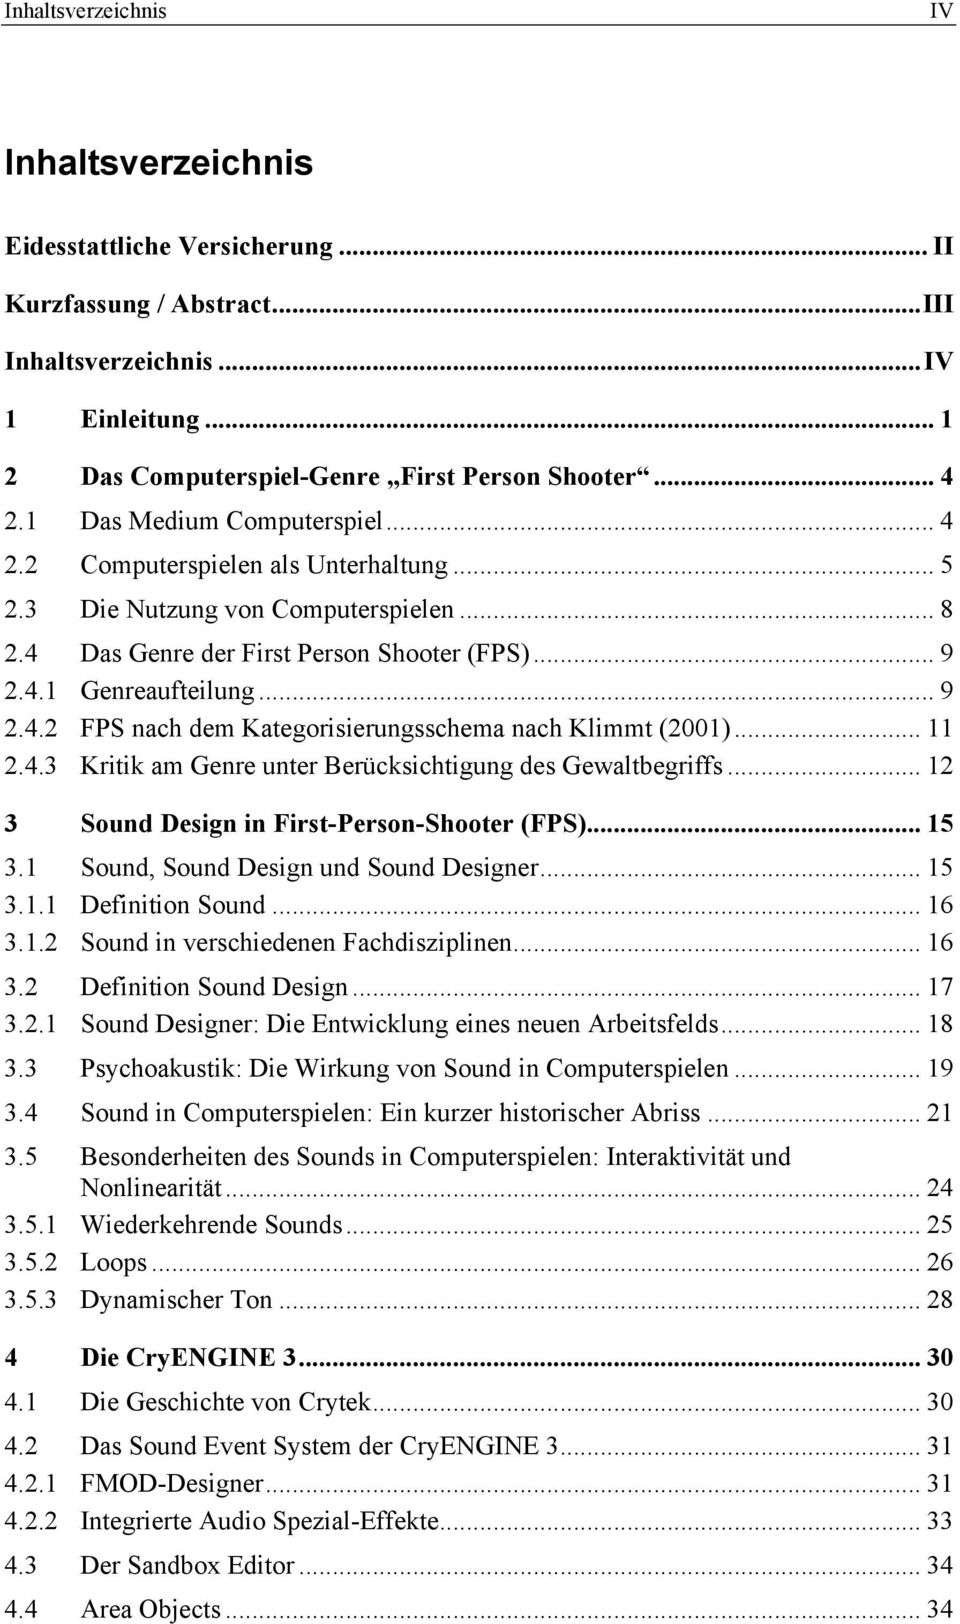 .. 11 2.4.3 Kritik am Genre unter Berücksichtigung des Gewaltbegriffs... 12 3 Sound Design in First-Person-Shooter (FPS)... 15 3.1 Sound, Sound Design und Sound Designer... 15 3.1.1 Definition Sound.